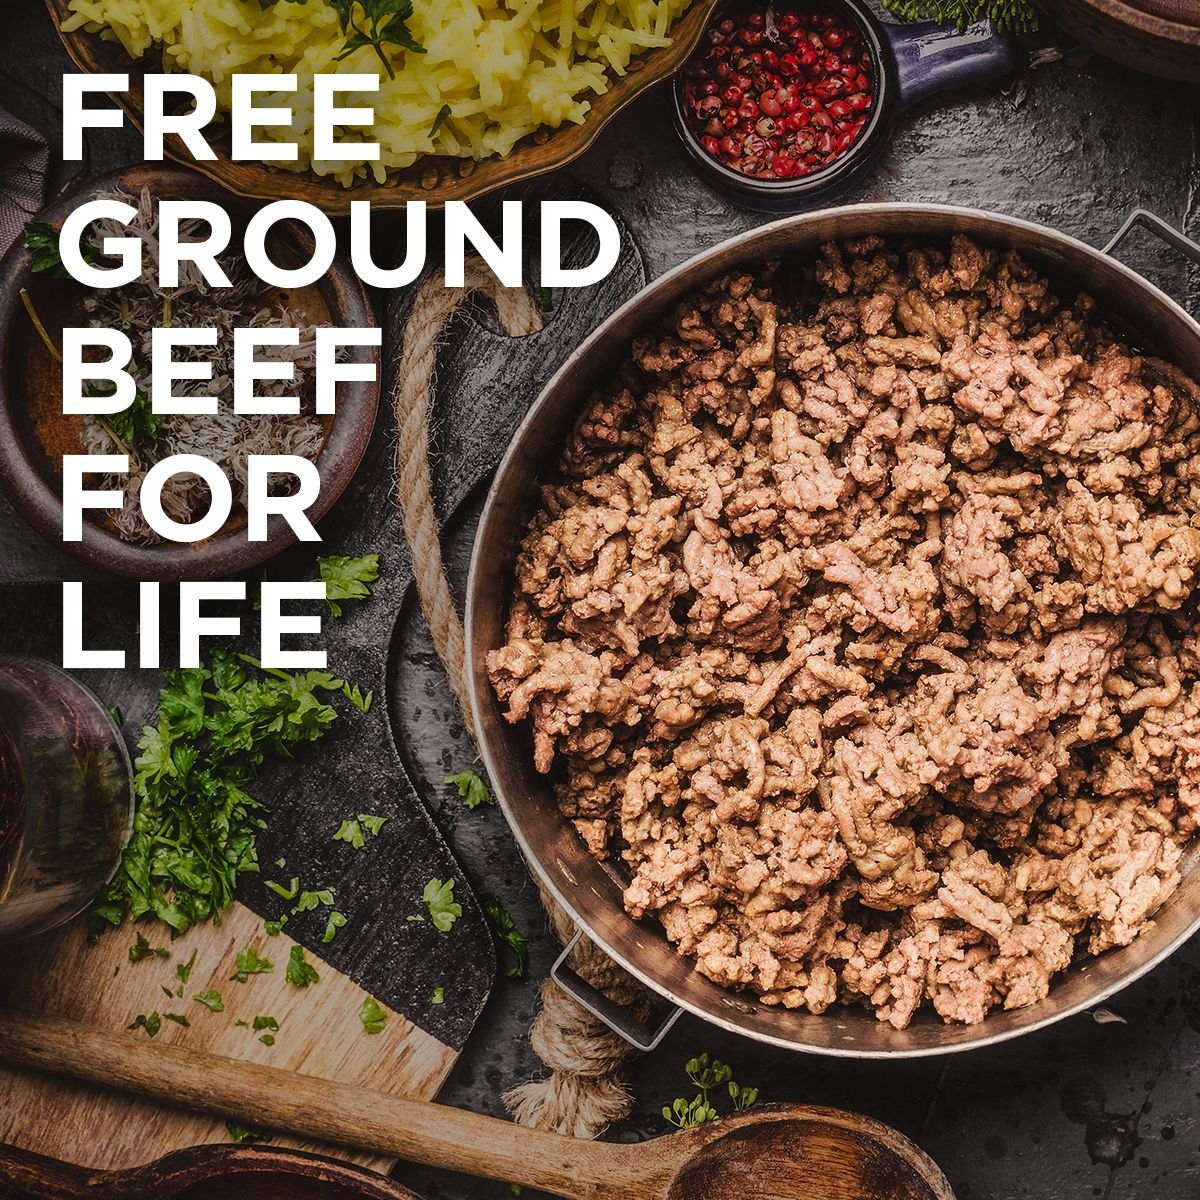 ButchrBox free ground beef for life